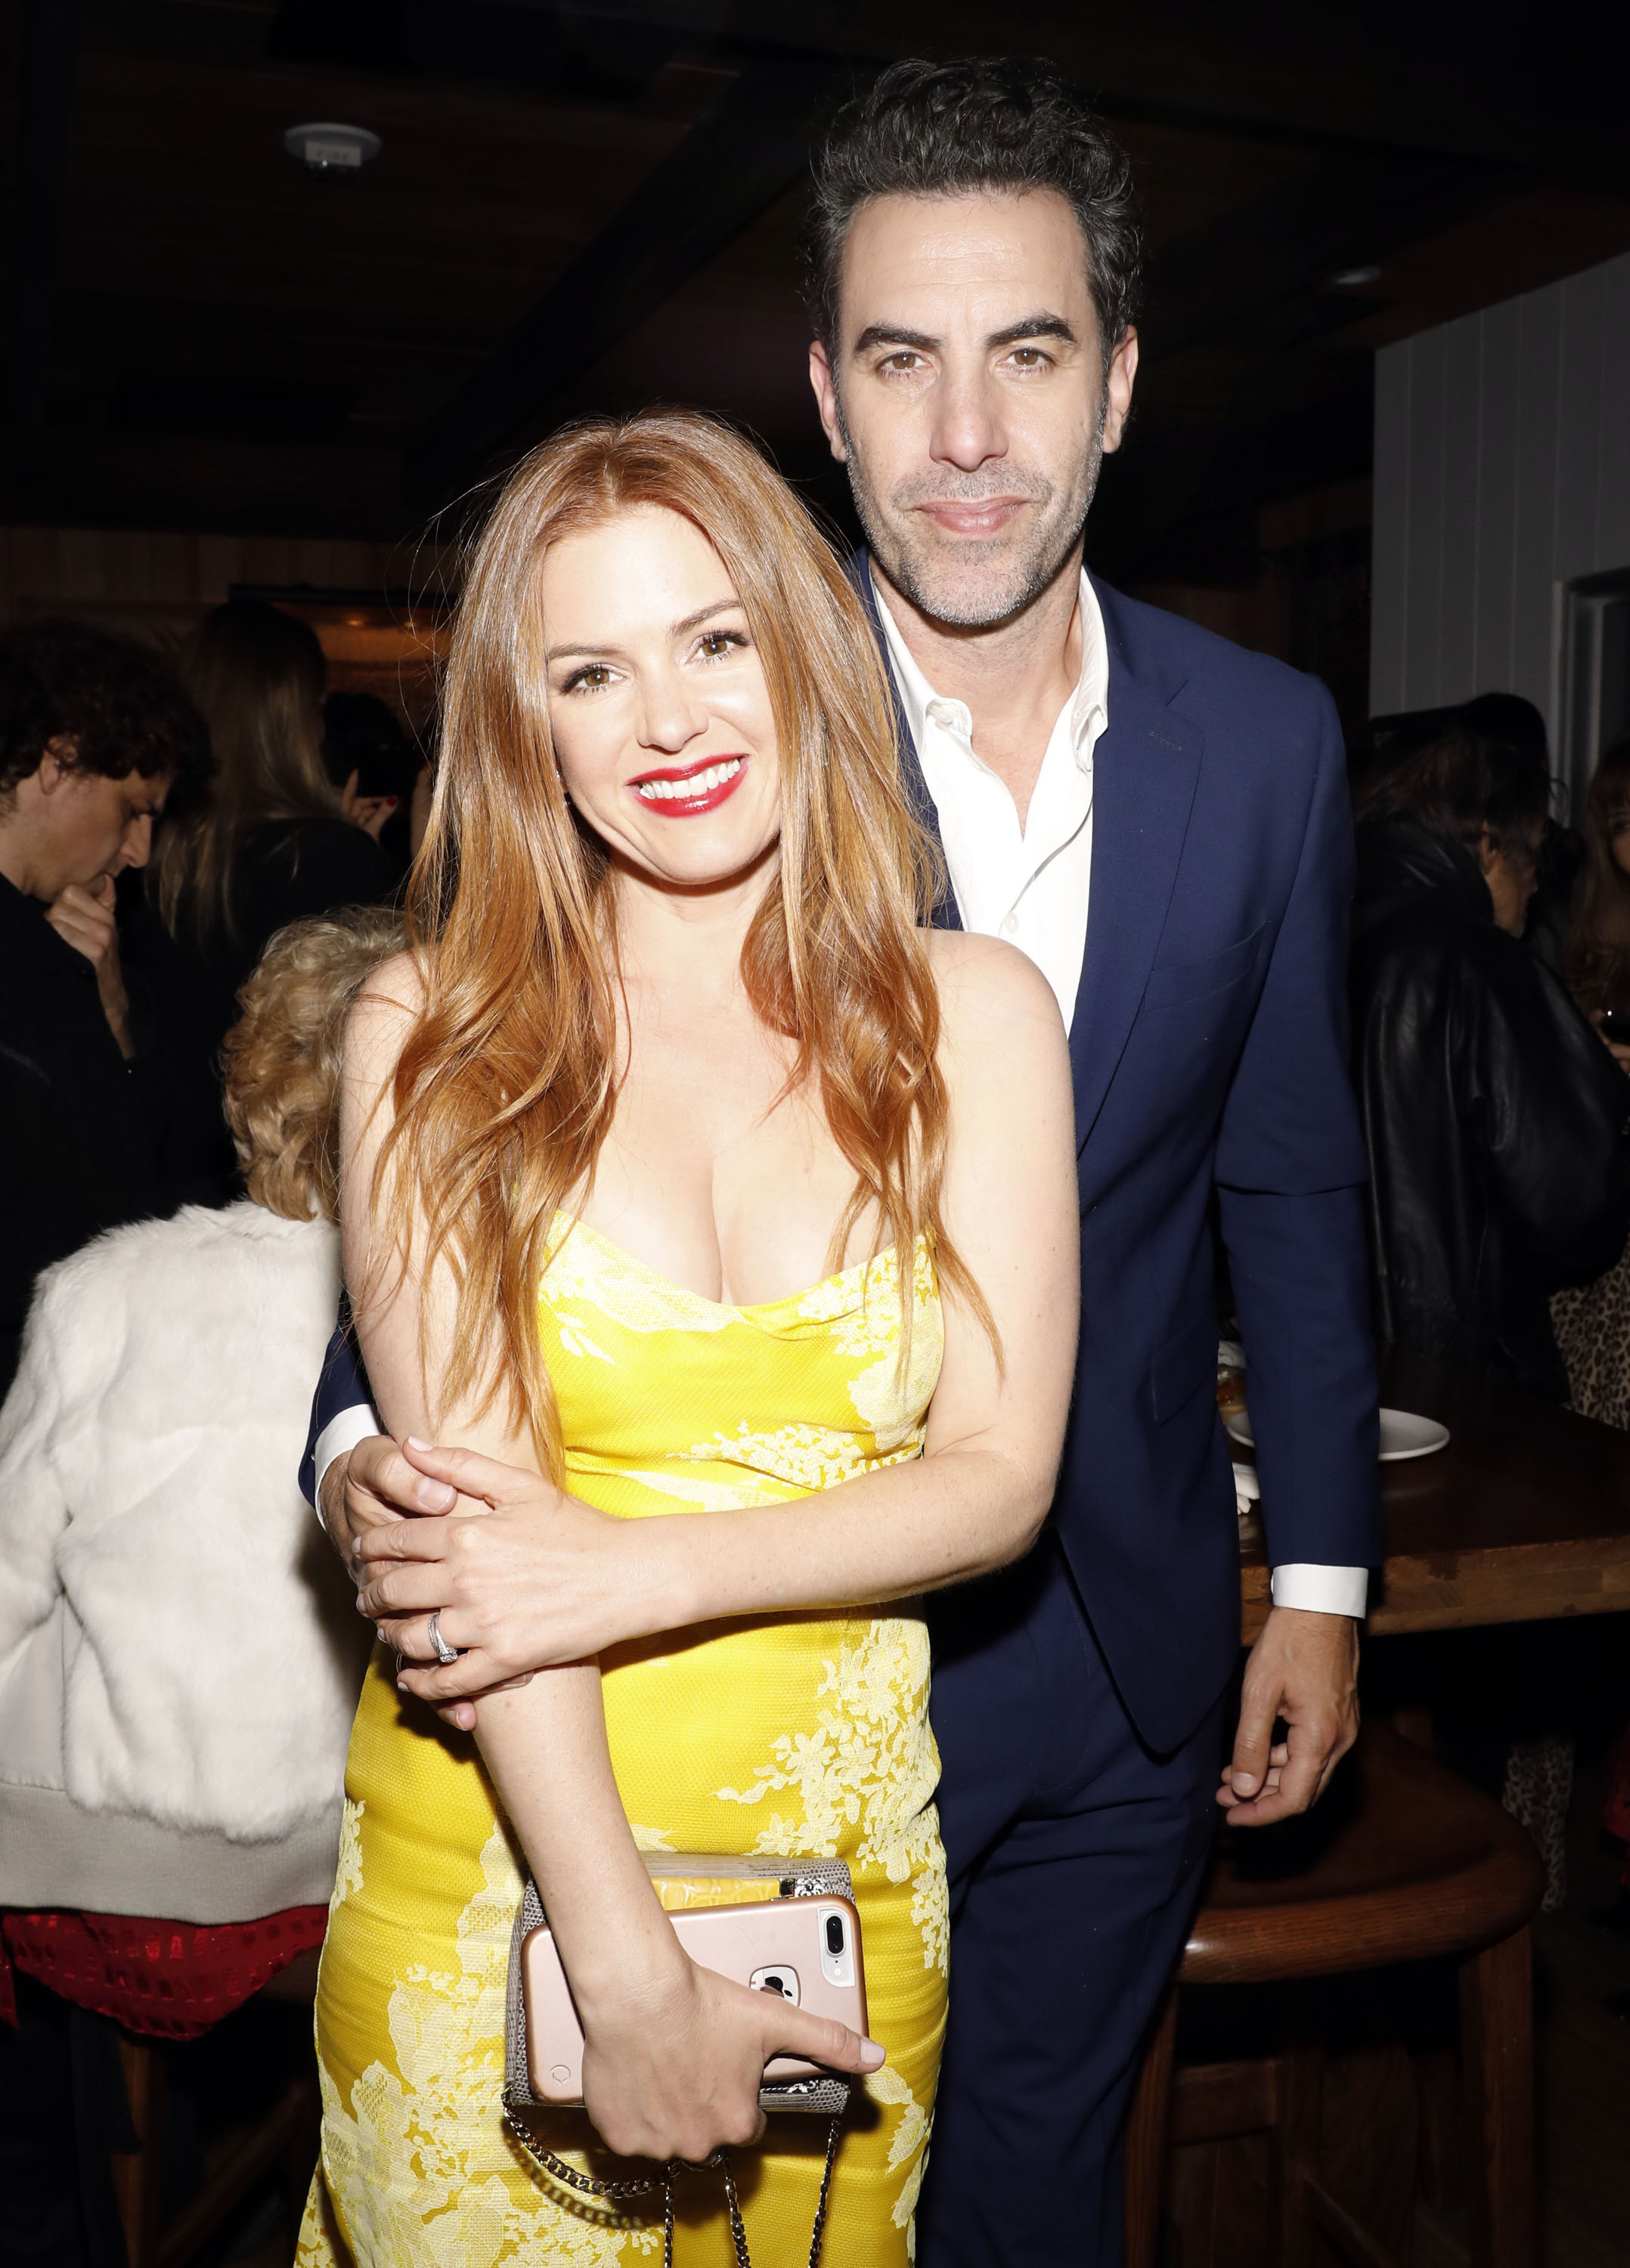 Sacha Baron Cohen and Isla Fisher at Estrella on January 6, 2017 in West Hollywood, California.